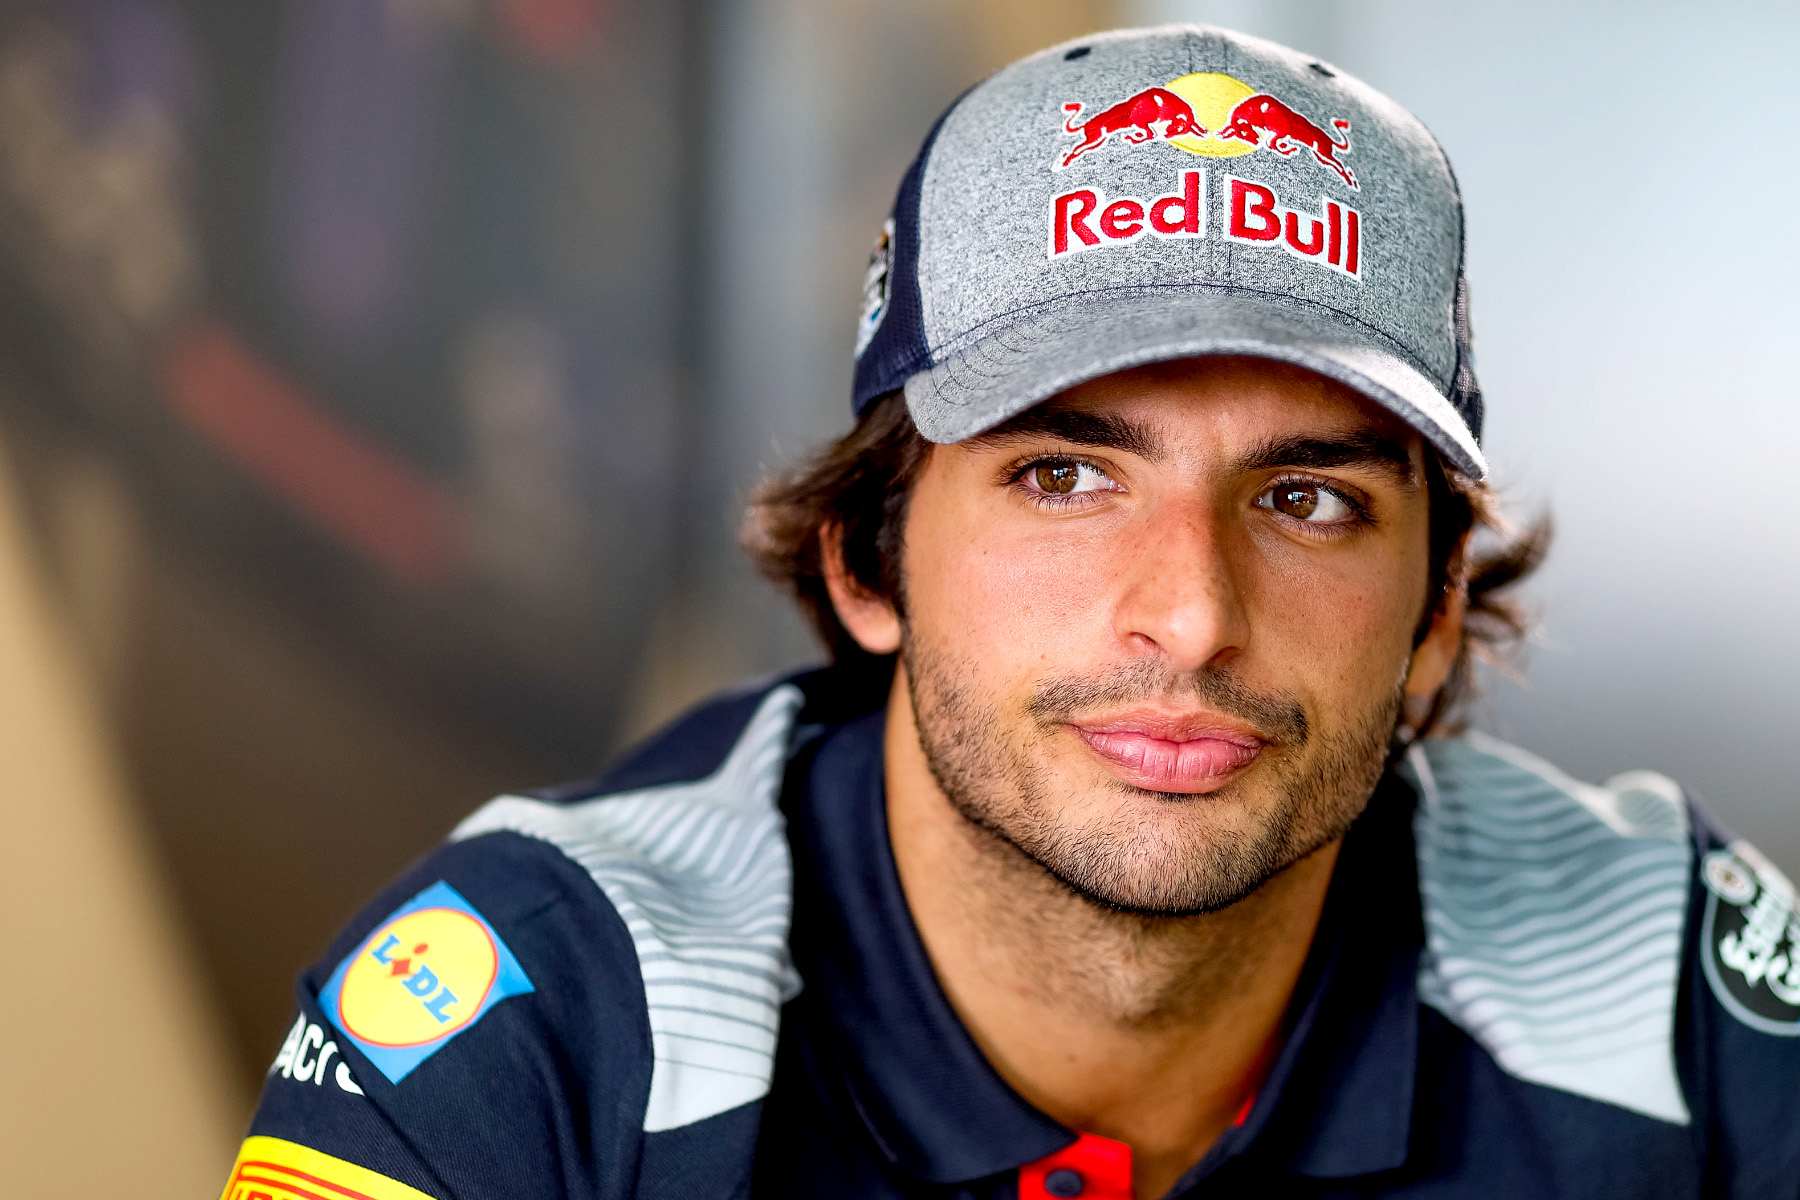 Carlos Sainz at the 2017 British Grand Prix.